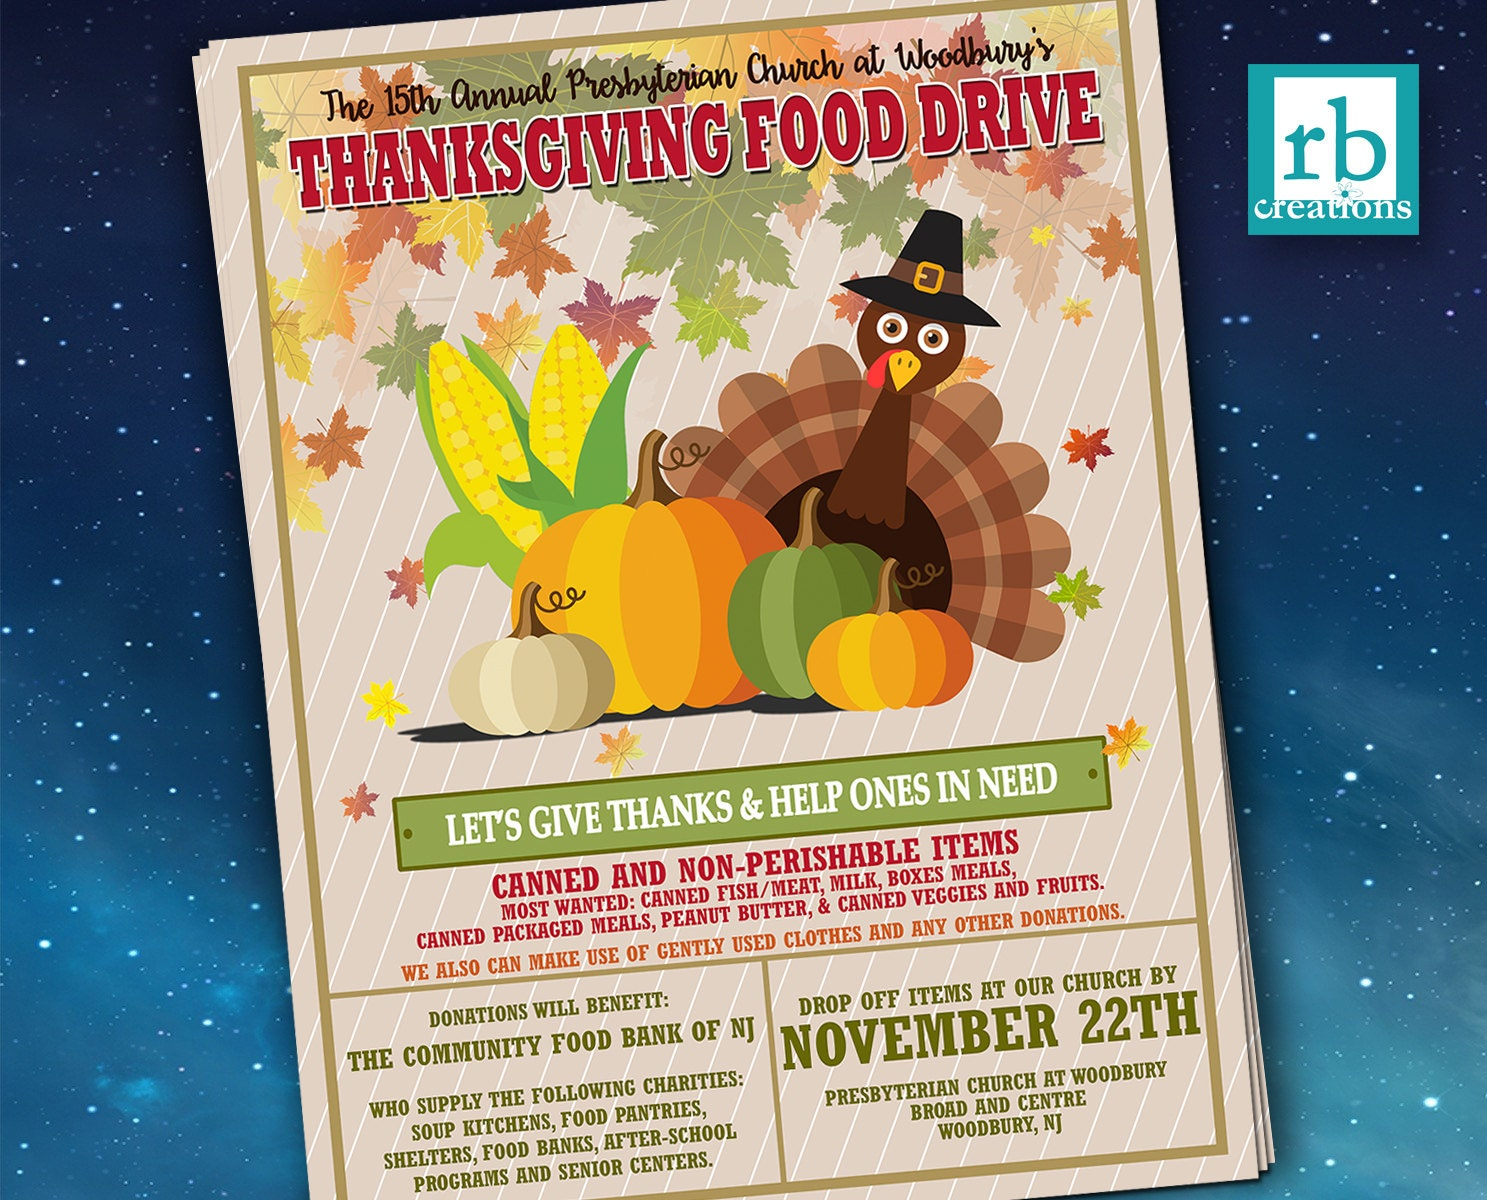 event flyer food drive flyer thanksgiving flyer autumn flyer event flyer food drive flyer thanksgiving flyer autumn flyer school flyer design church flyer design flyer design digital printables